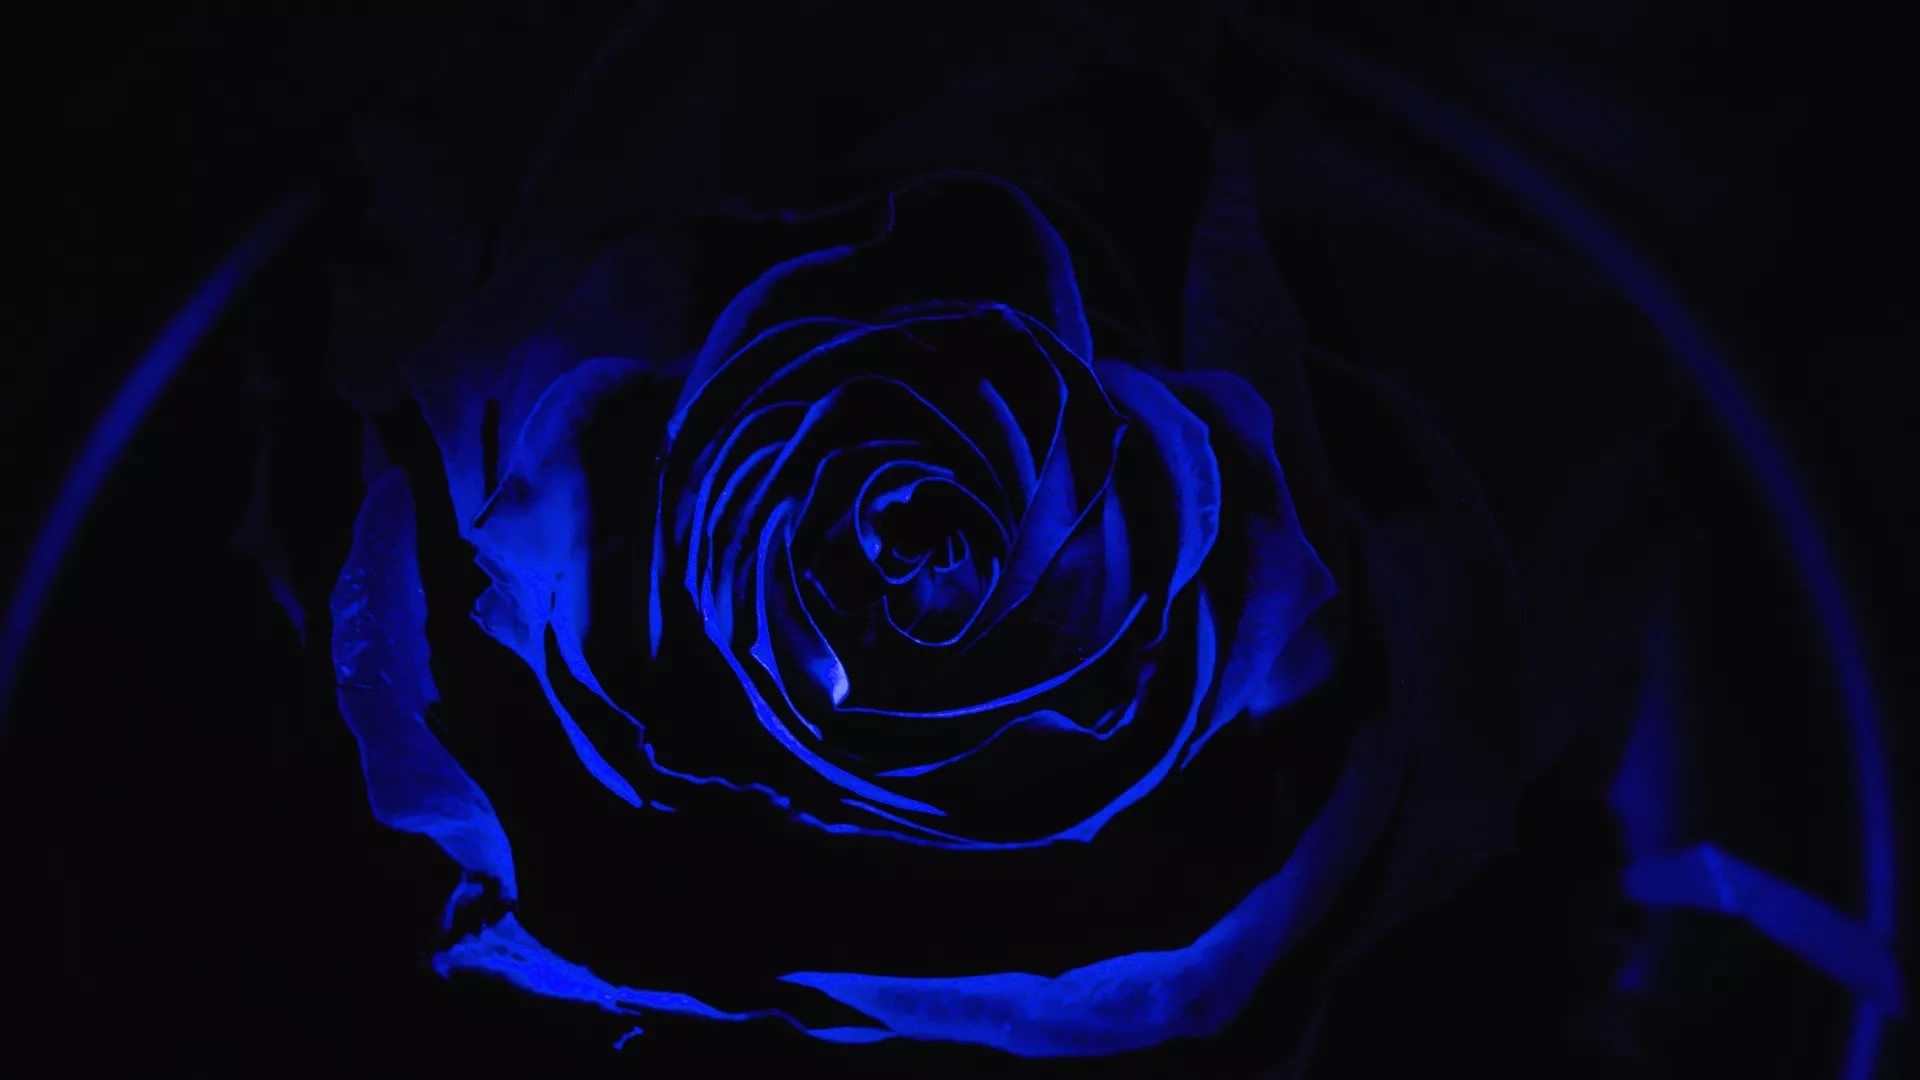 Blue Rose Background Wallpaper HD